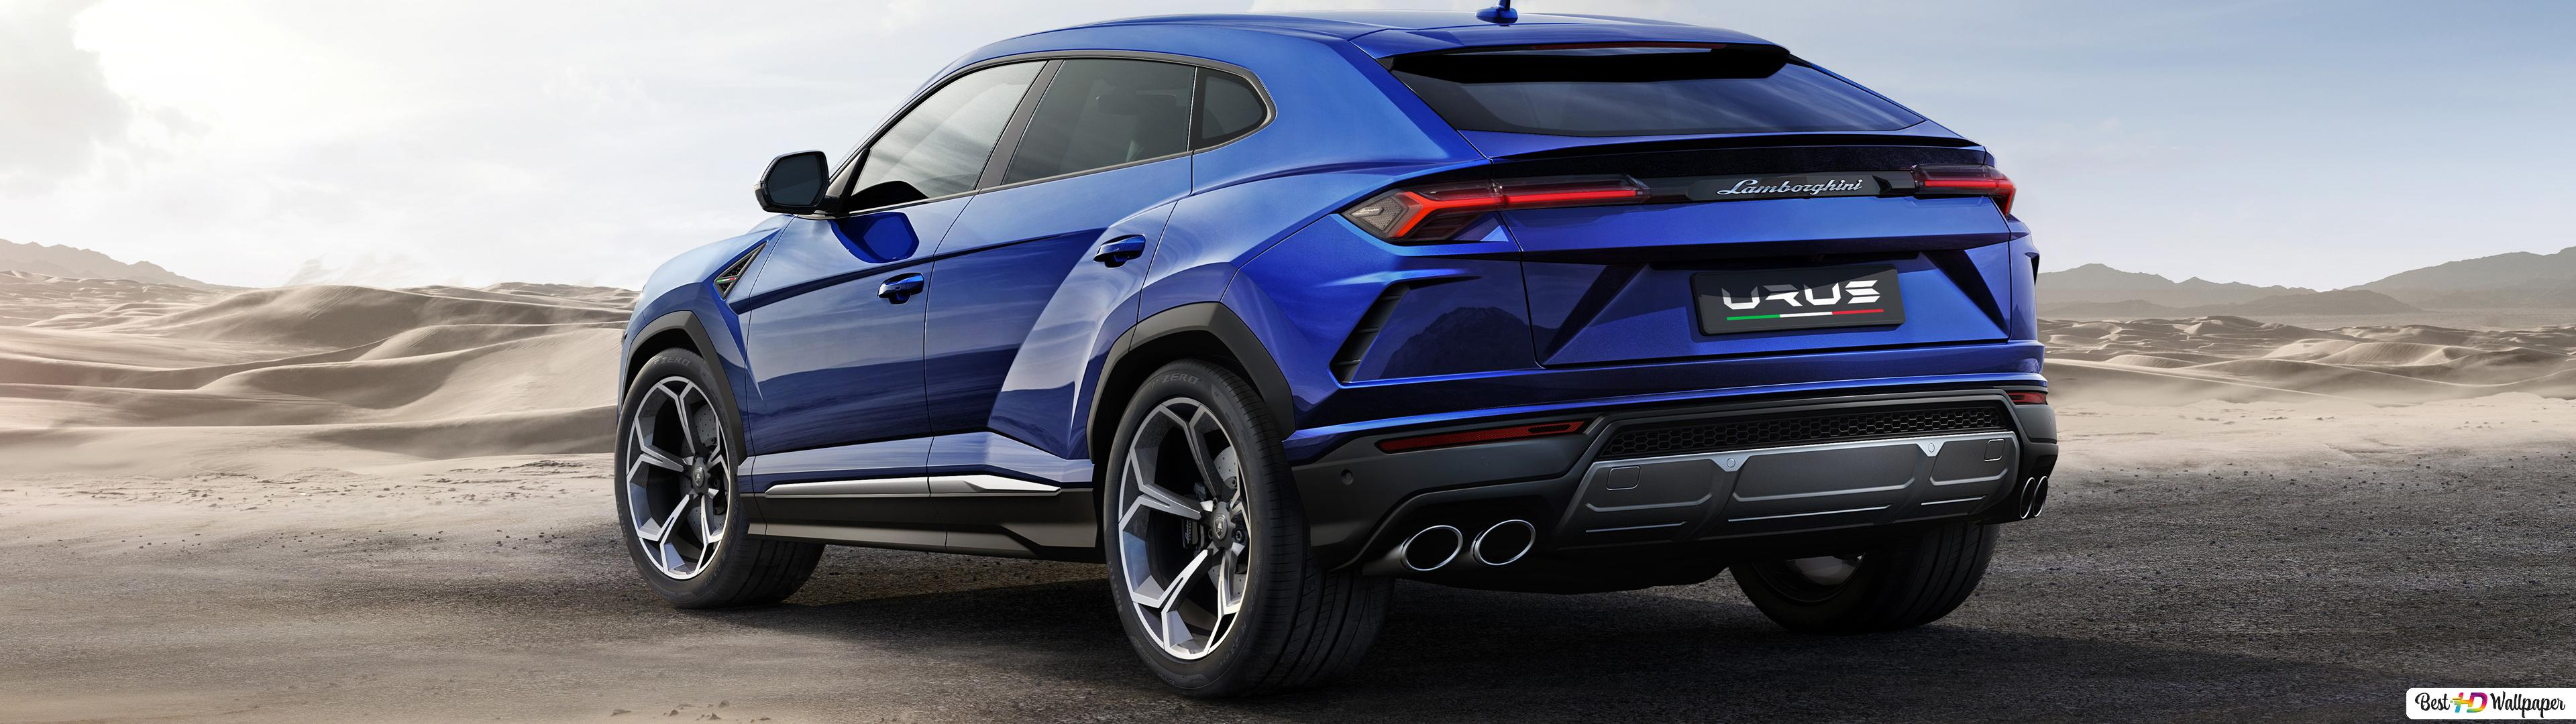 Blue Lamborghini Urus Hd Wallpaper Download